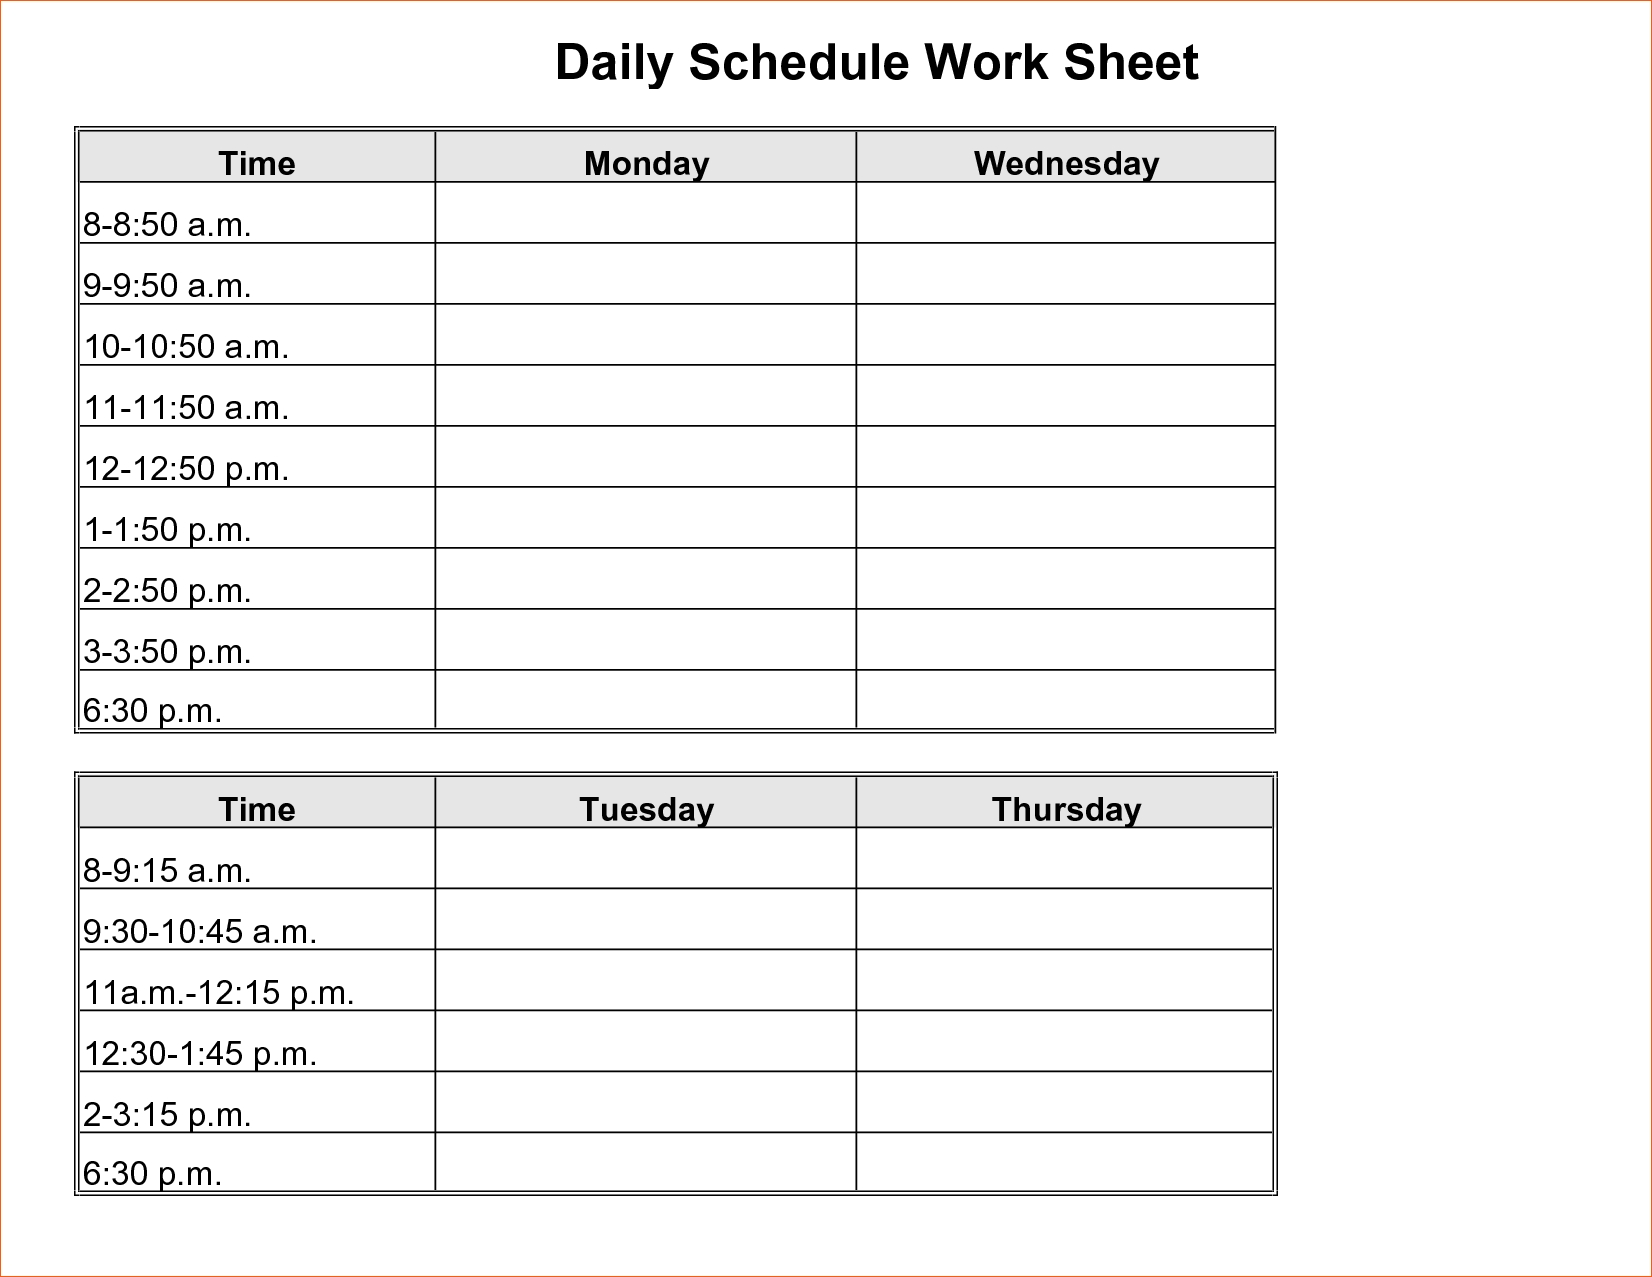 Daily Schedule With Times Printable Filename – Heegan Times  Printable Daily Schedule With Time